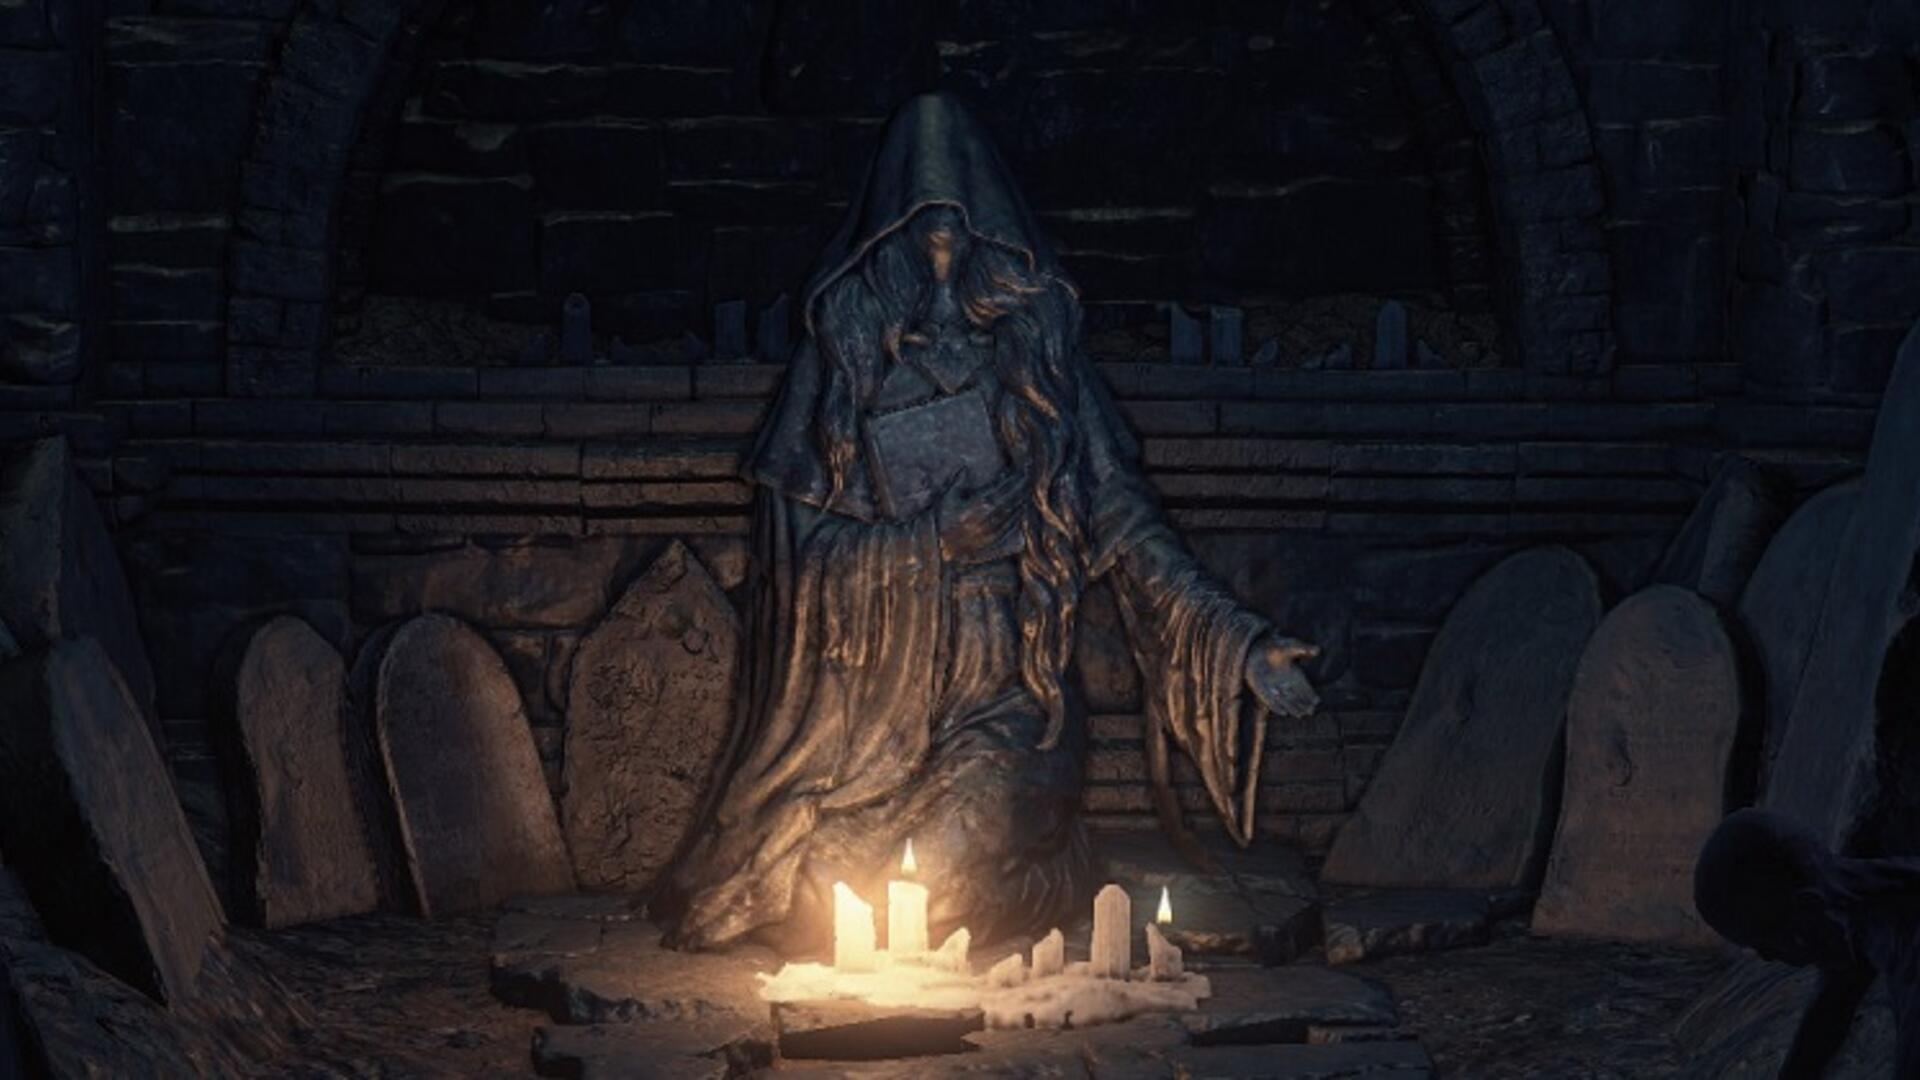 Dark Souls 3: How to Get the Grave Key and Free Irina